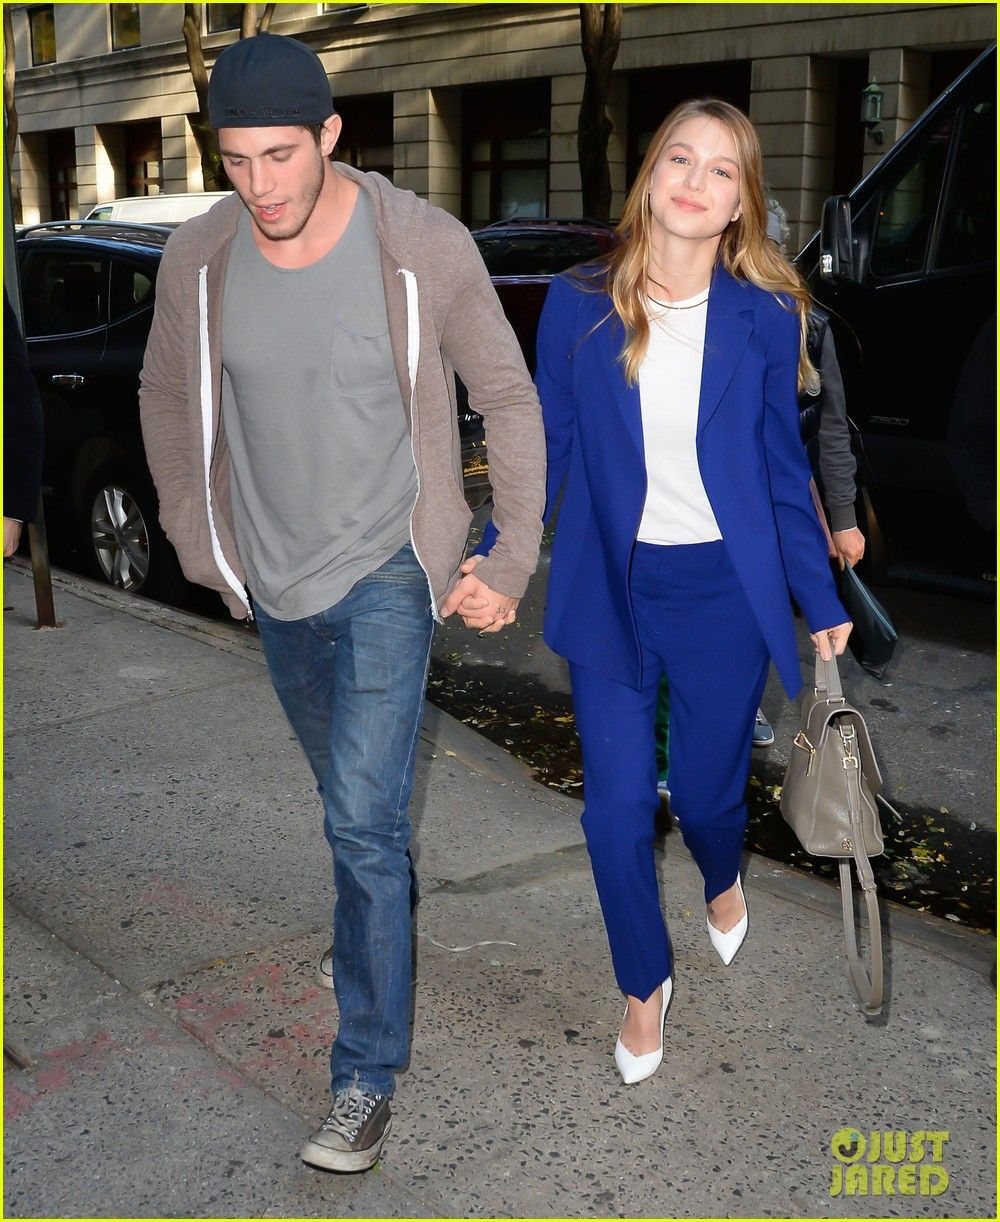 Melissa Benoist Gets Support From Hubby Blake Jenner During Supergirl Promo In The Big Apple Melissa Benoist Blake Jenner Blake Jenner Blake Jenner Supergirl